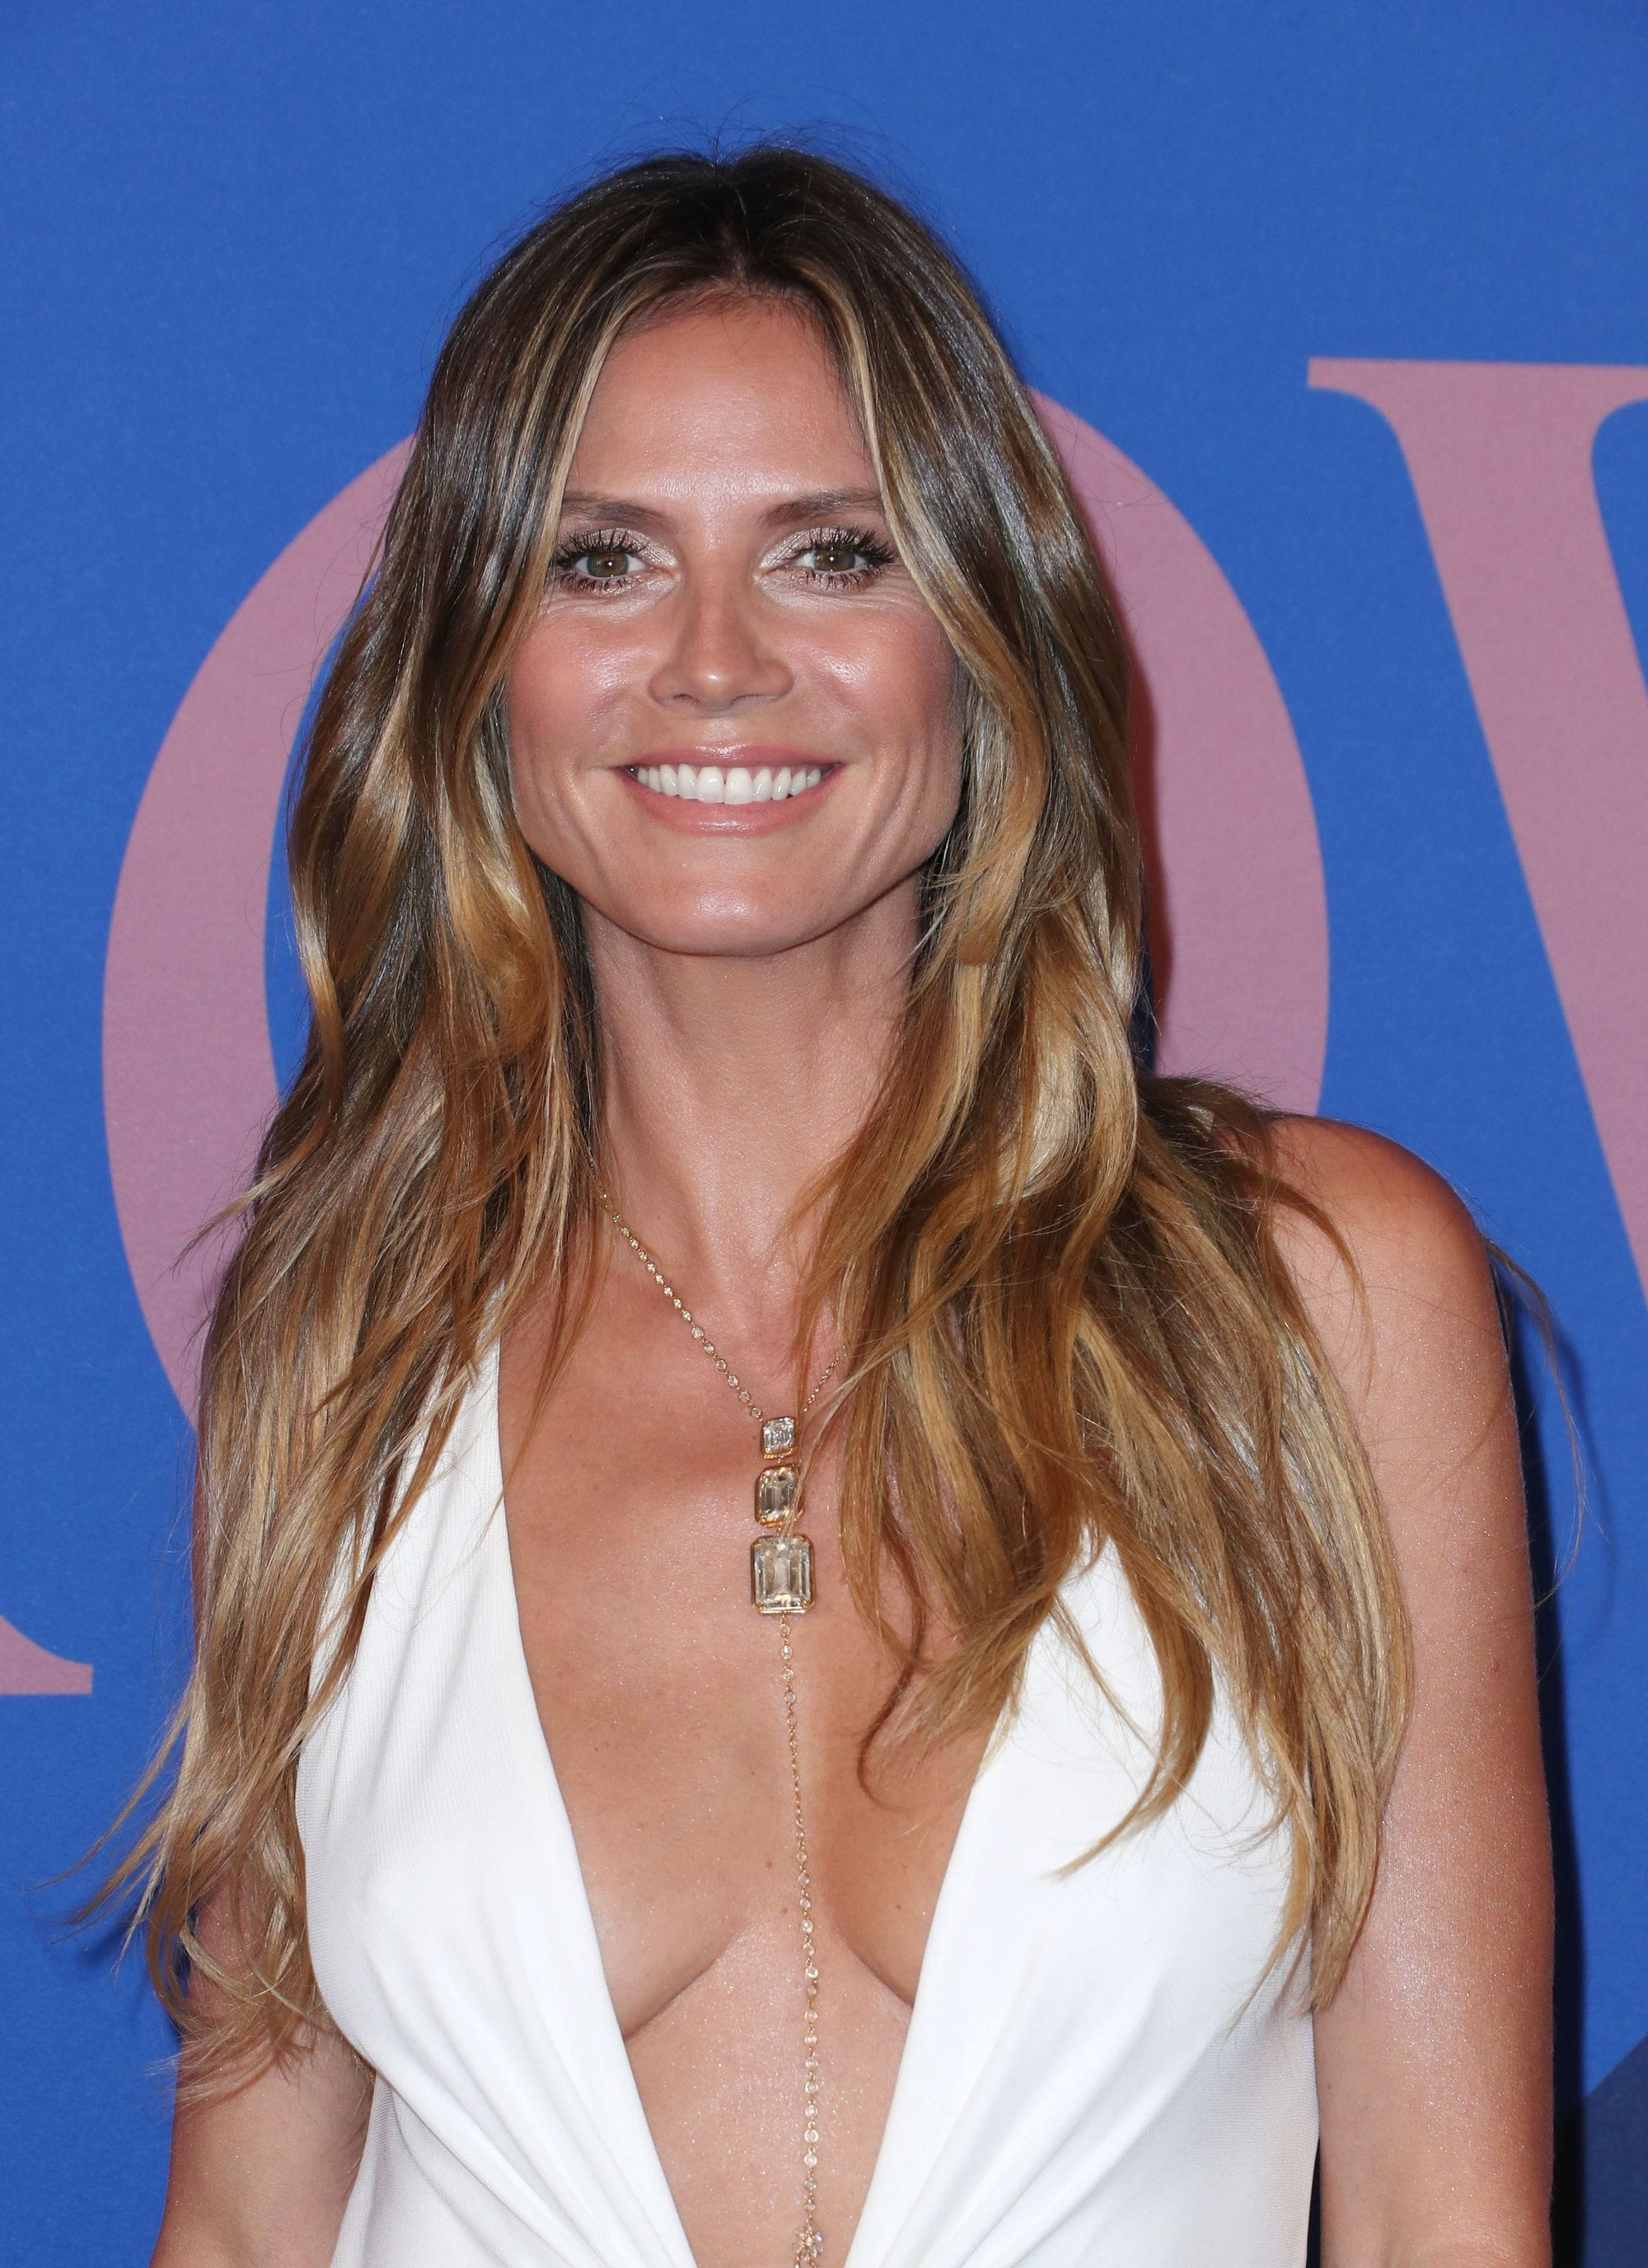 Dirty blonde hair - Heidi Klum wears her long hair with loose waves and centre part